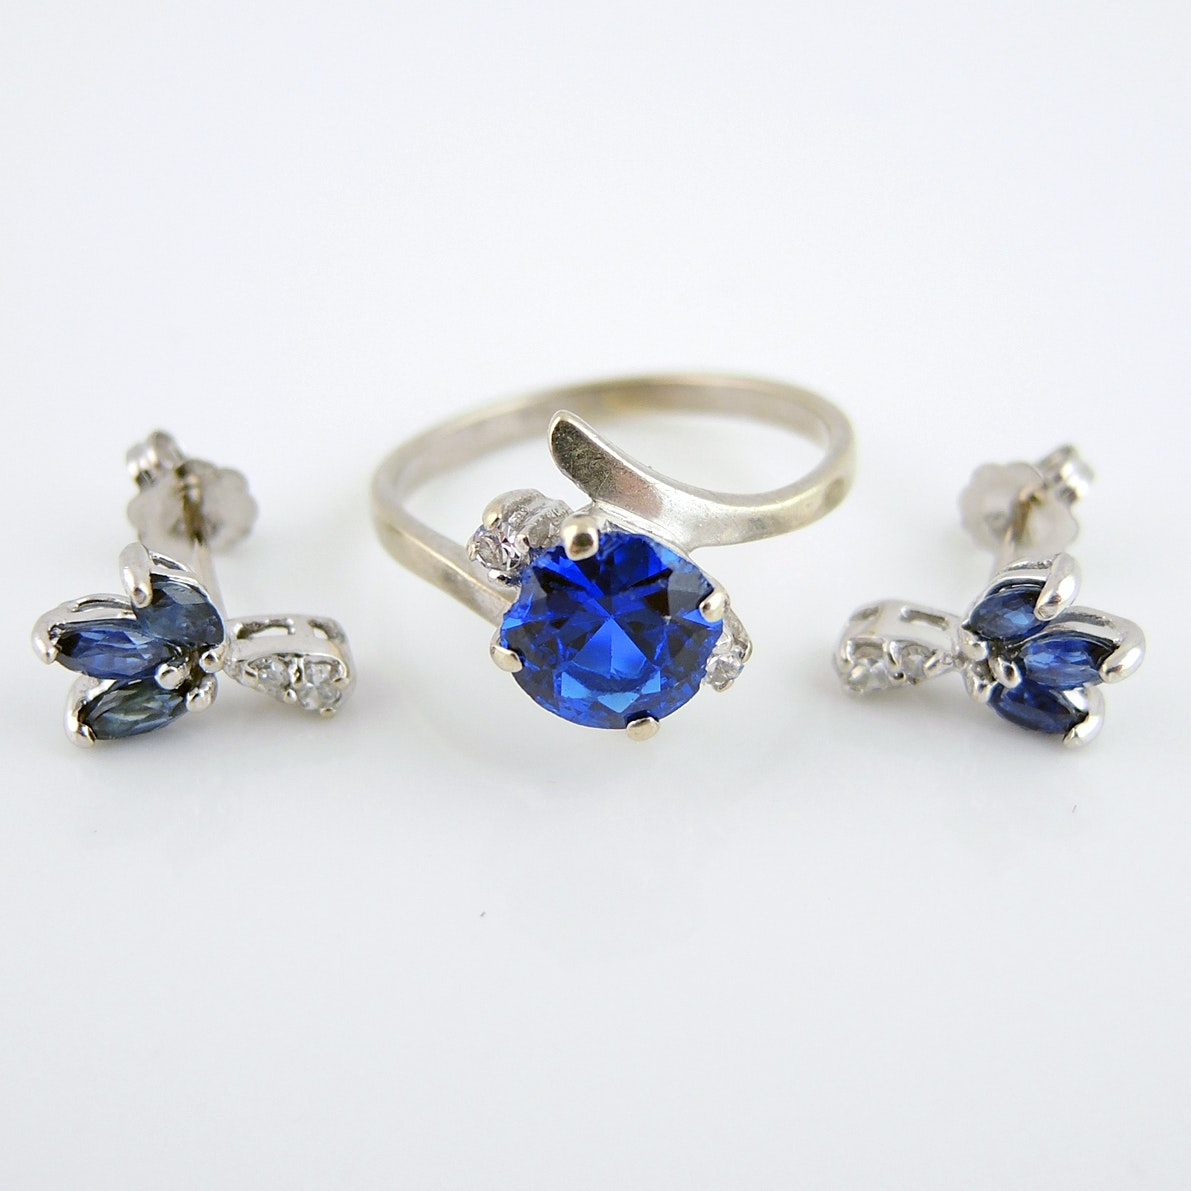 14k White Gold Earrings And 10k Ring With Blue Stones